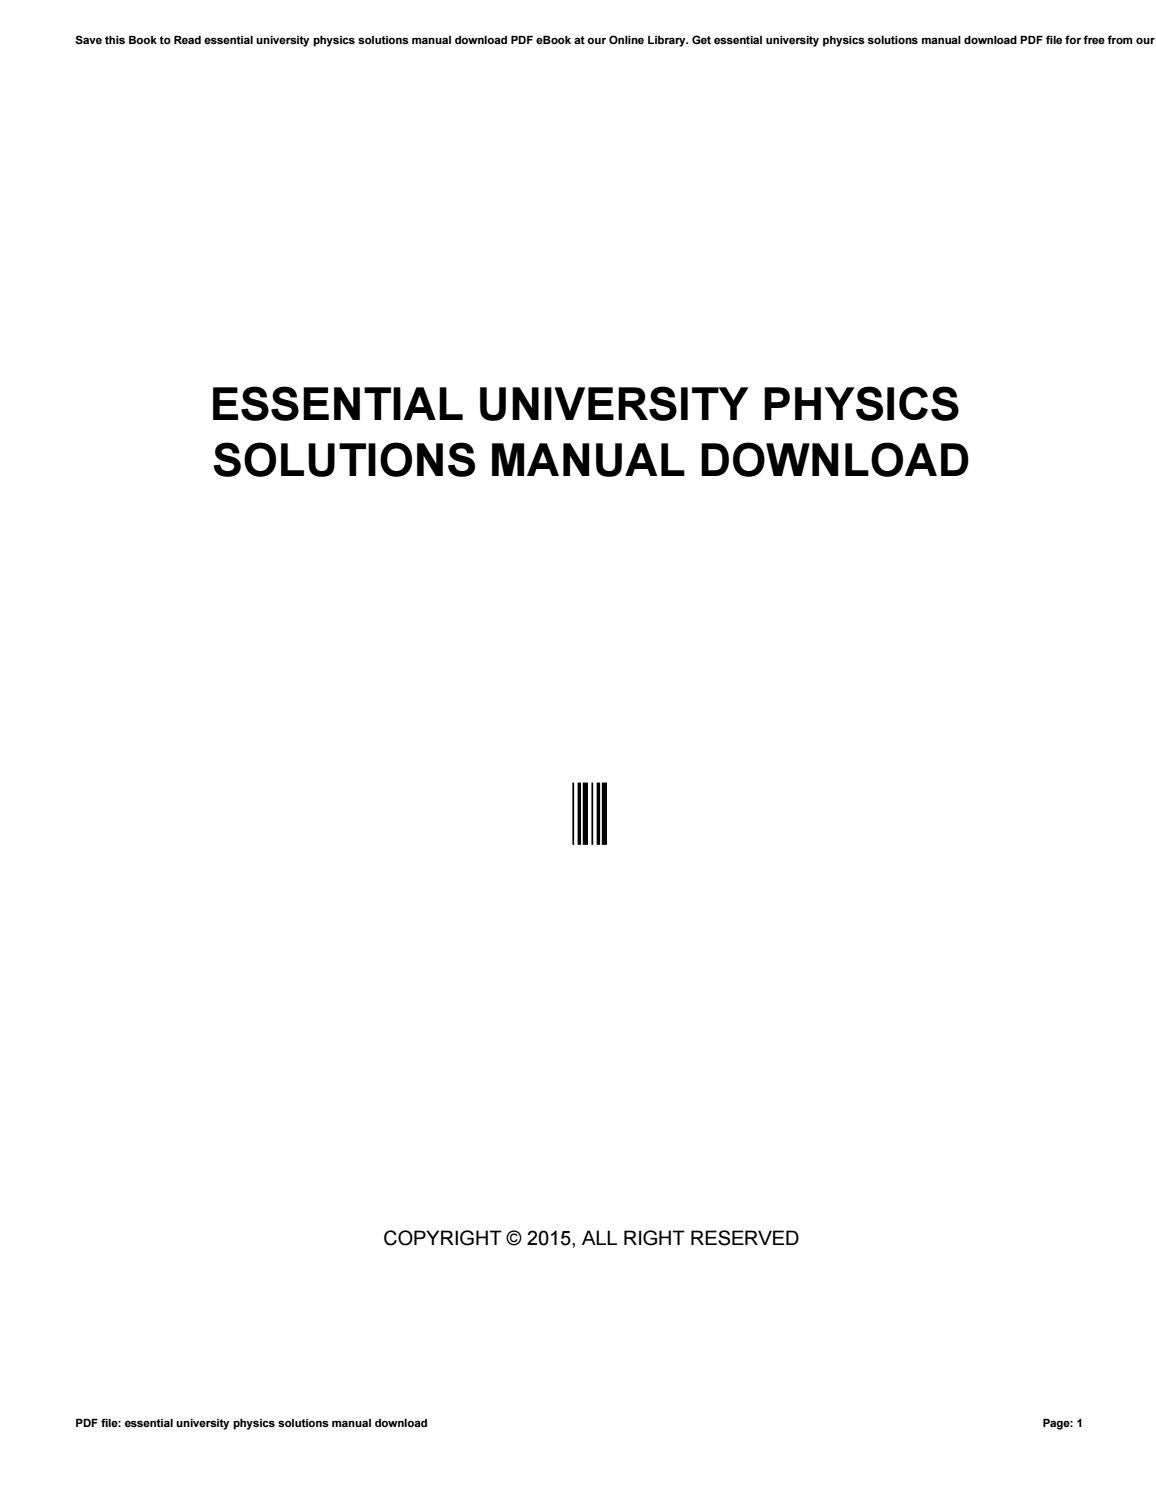 Essential university physics solutions manual download by